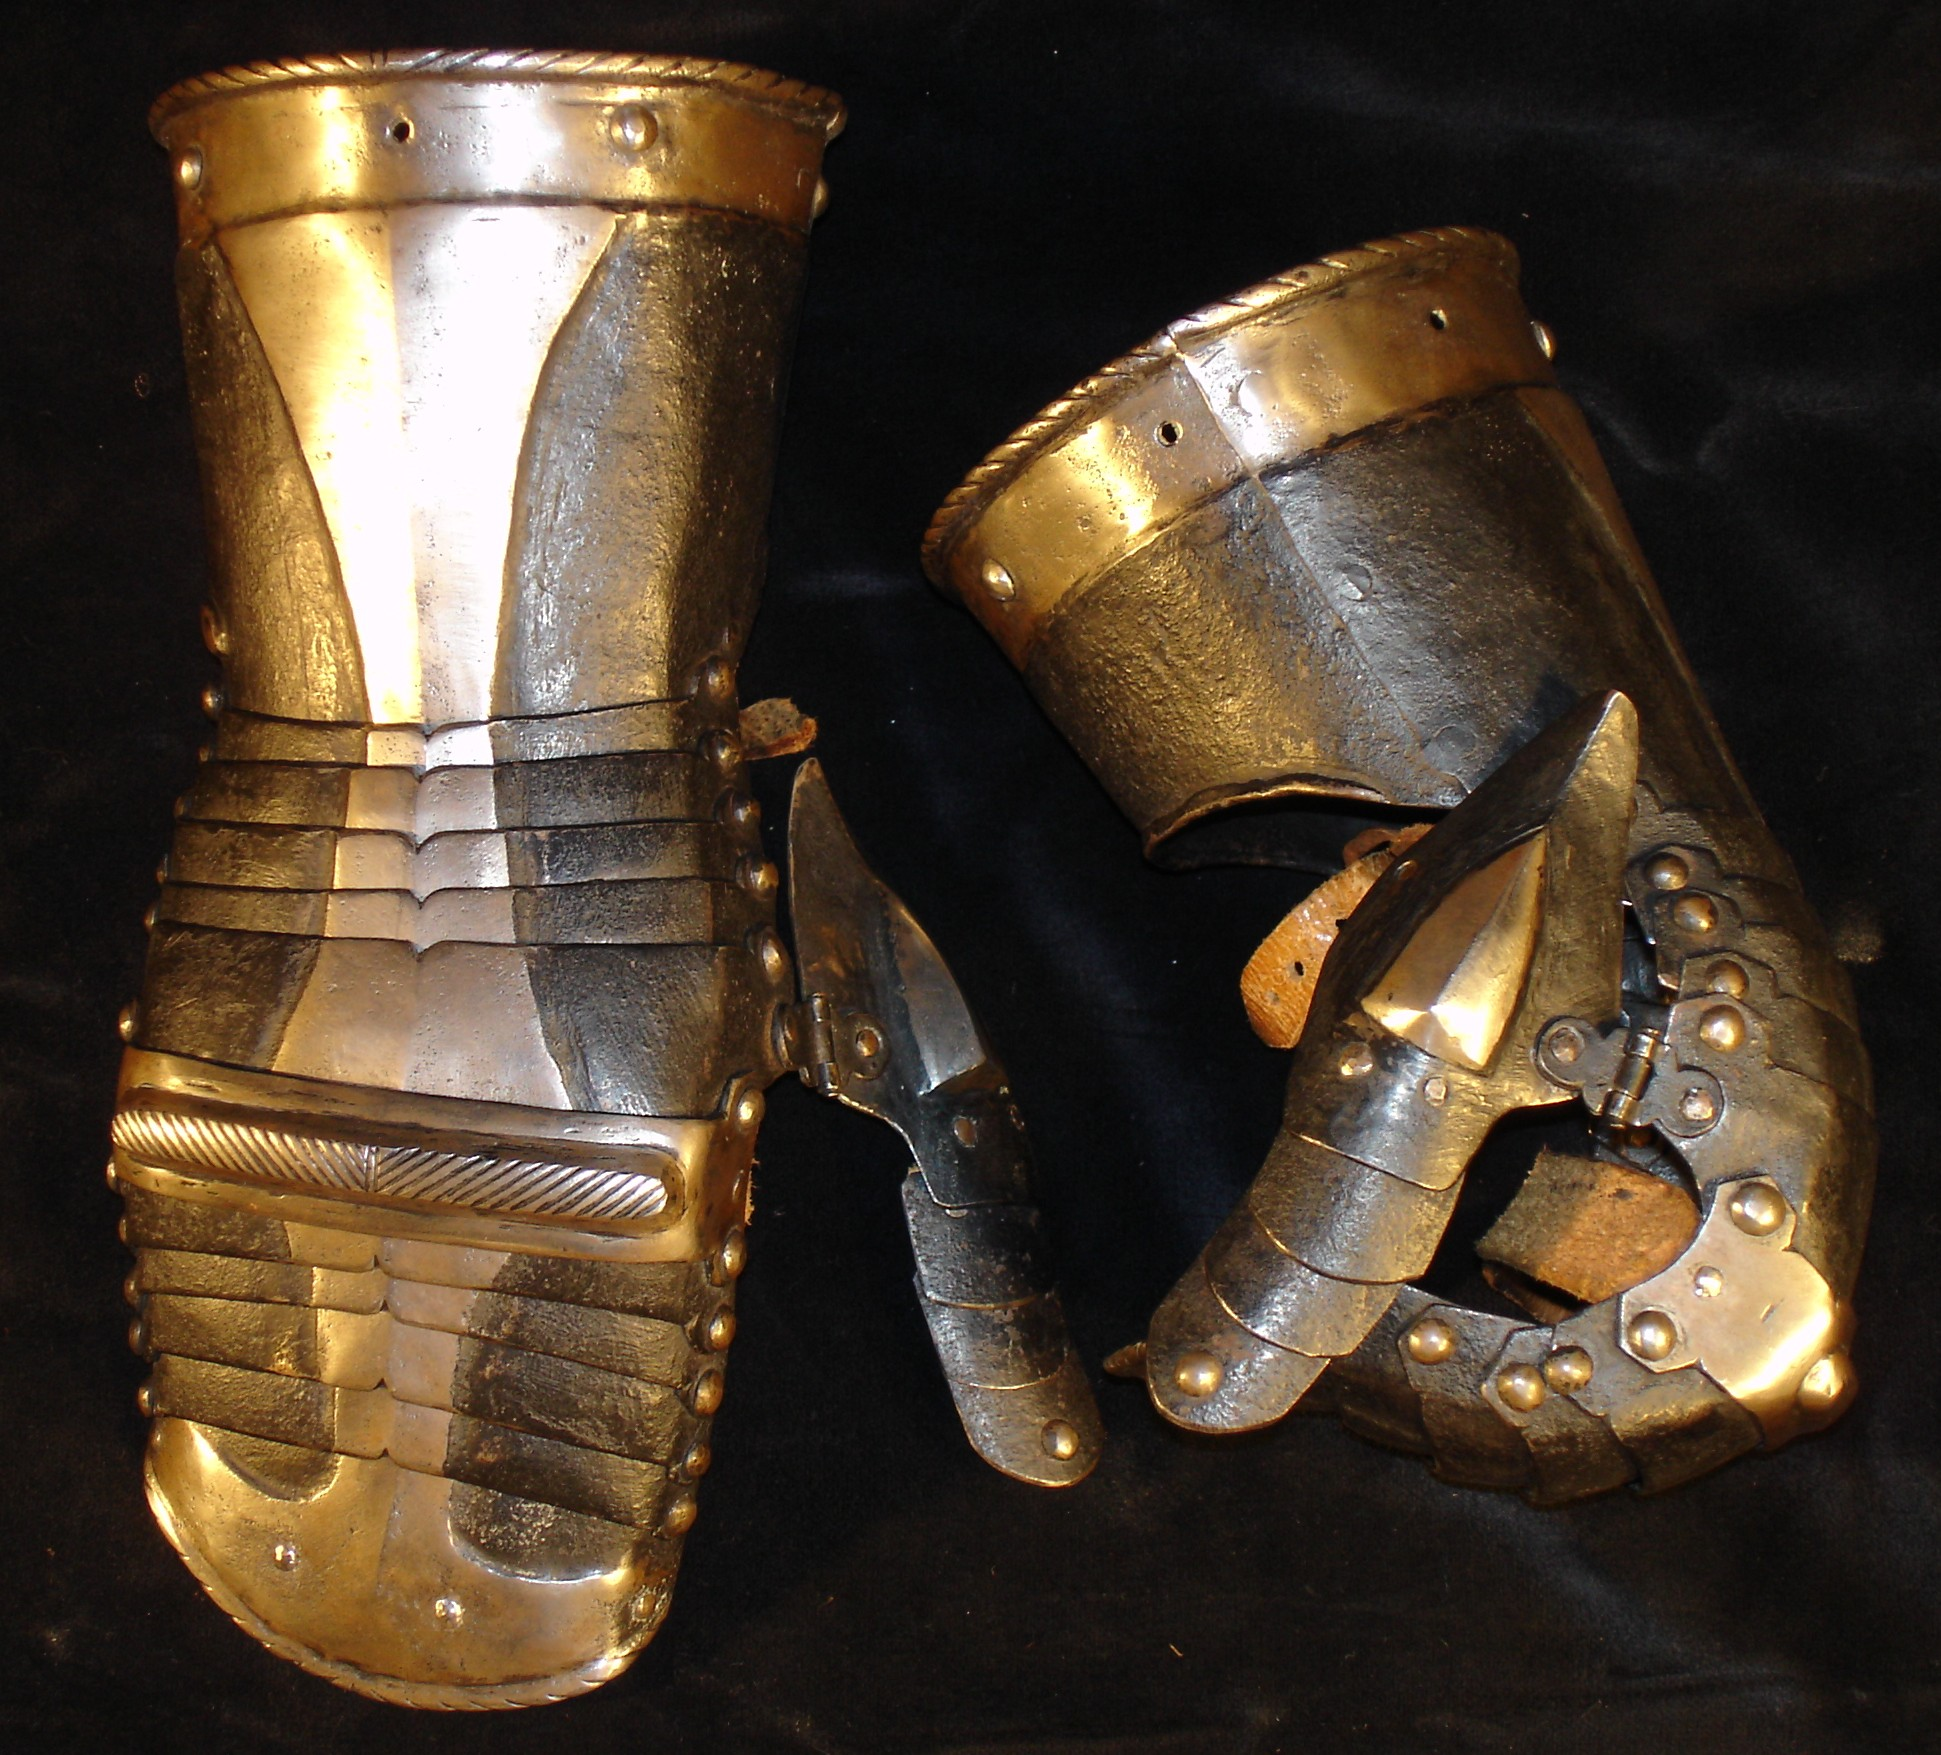 B&W gauntlets on Wade Allens site